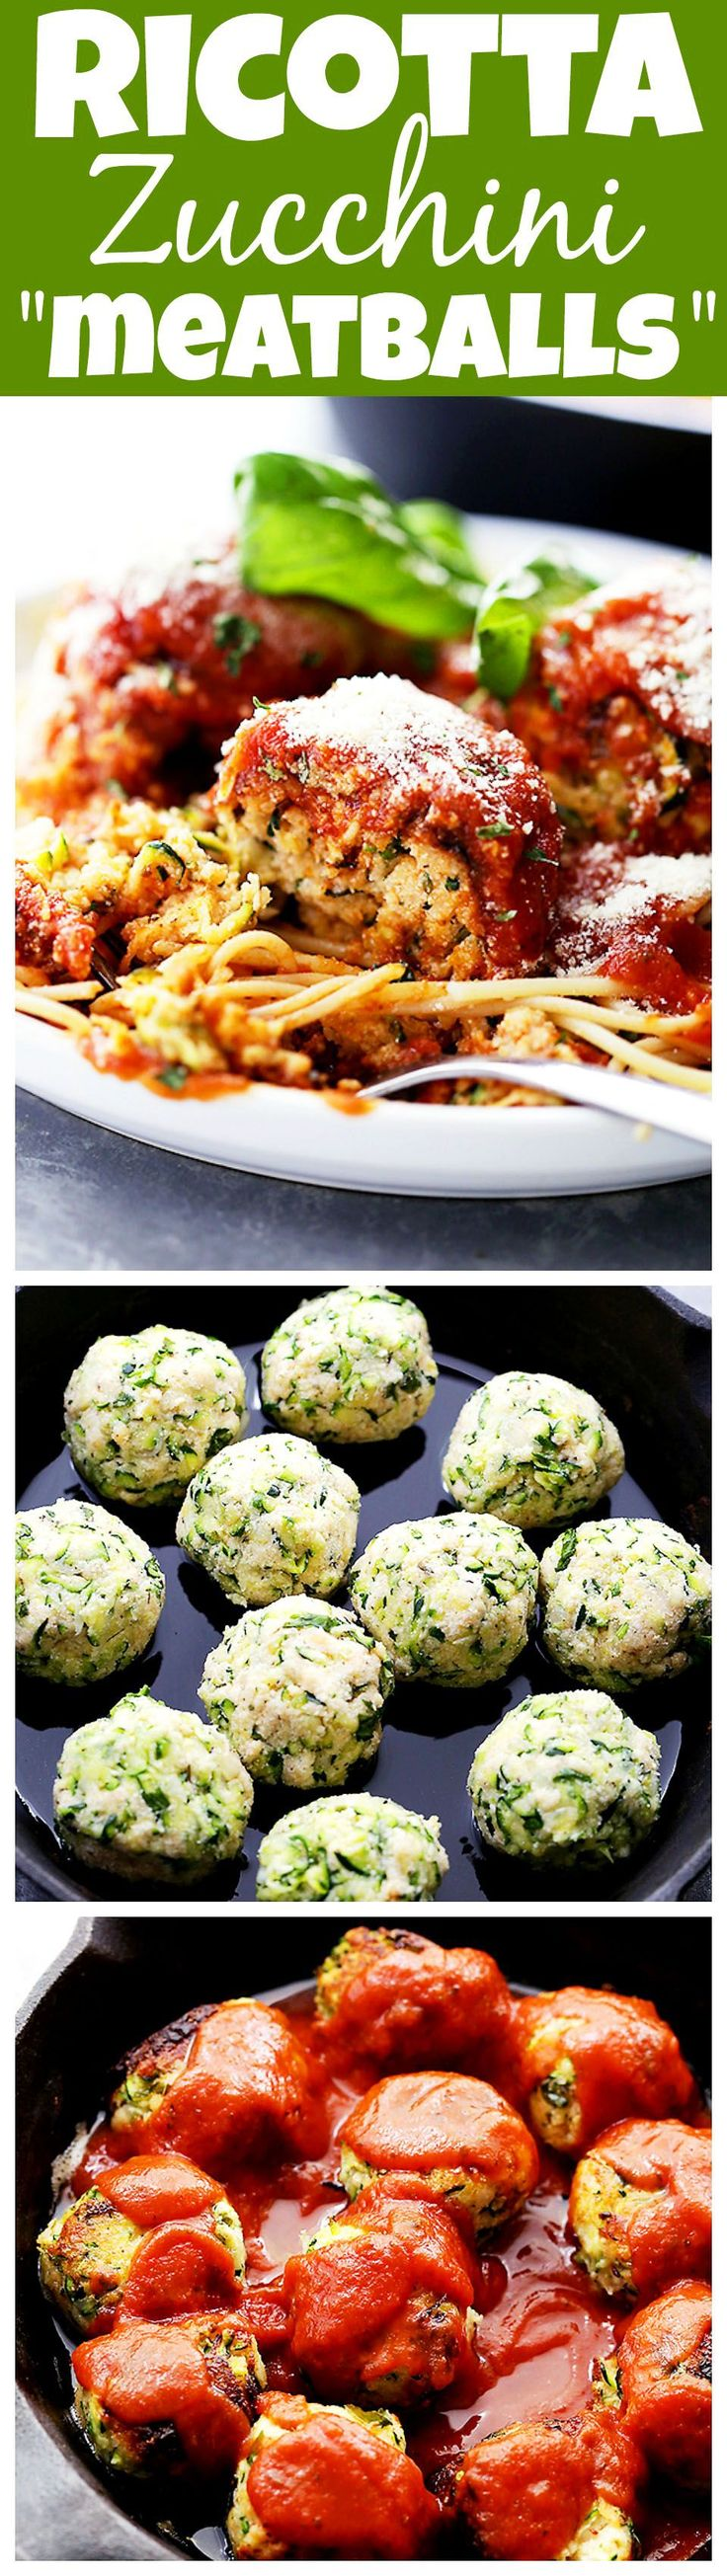 """Ricotta Zucchini """"Meatballs"""" - Delicious, melt-in-your-mouth-amazing zucchini meatballs with ricotta and parmesan cheese, topped with a warm and bubbly tomato s"""